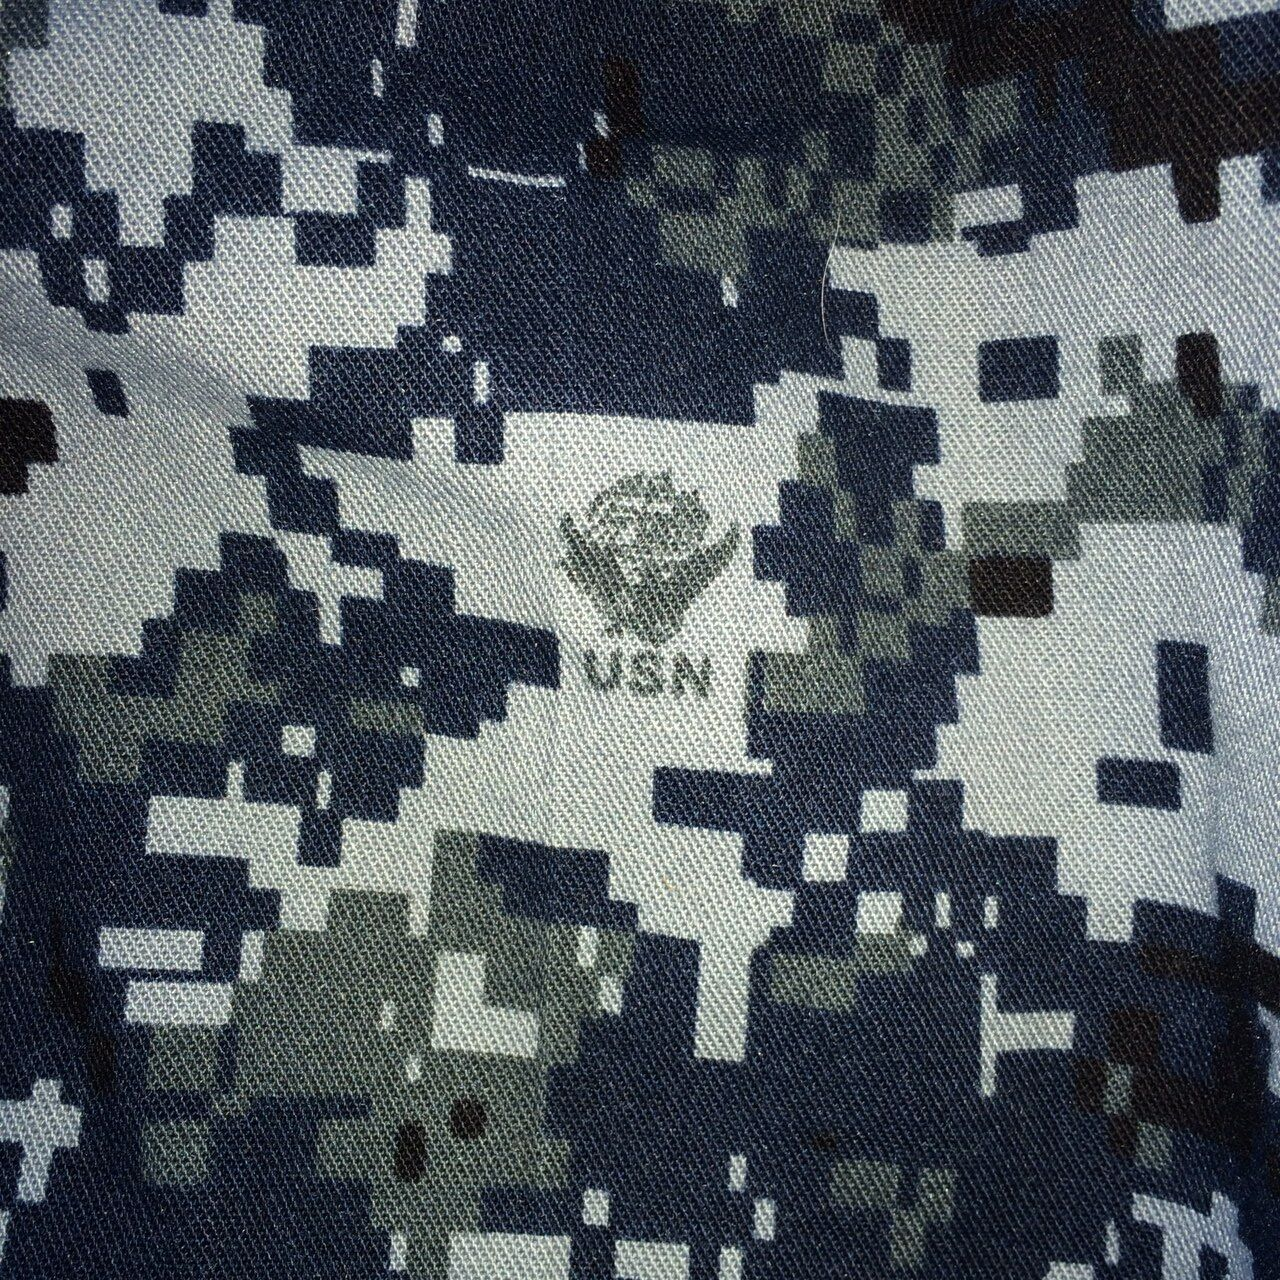 US NAVY NWU USN Army Digital Pattern Trousers Trousers Pattern Working Army Hose Medium Regular 2e8350